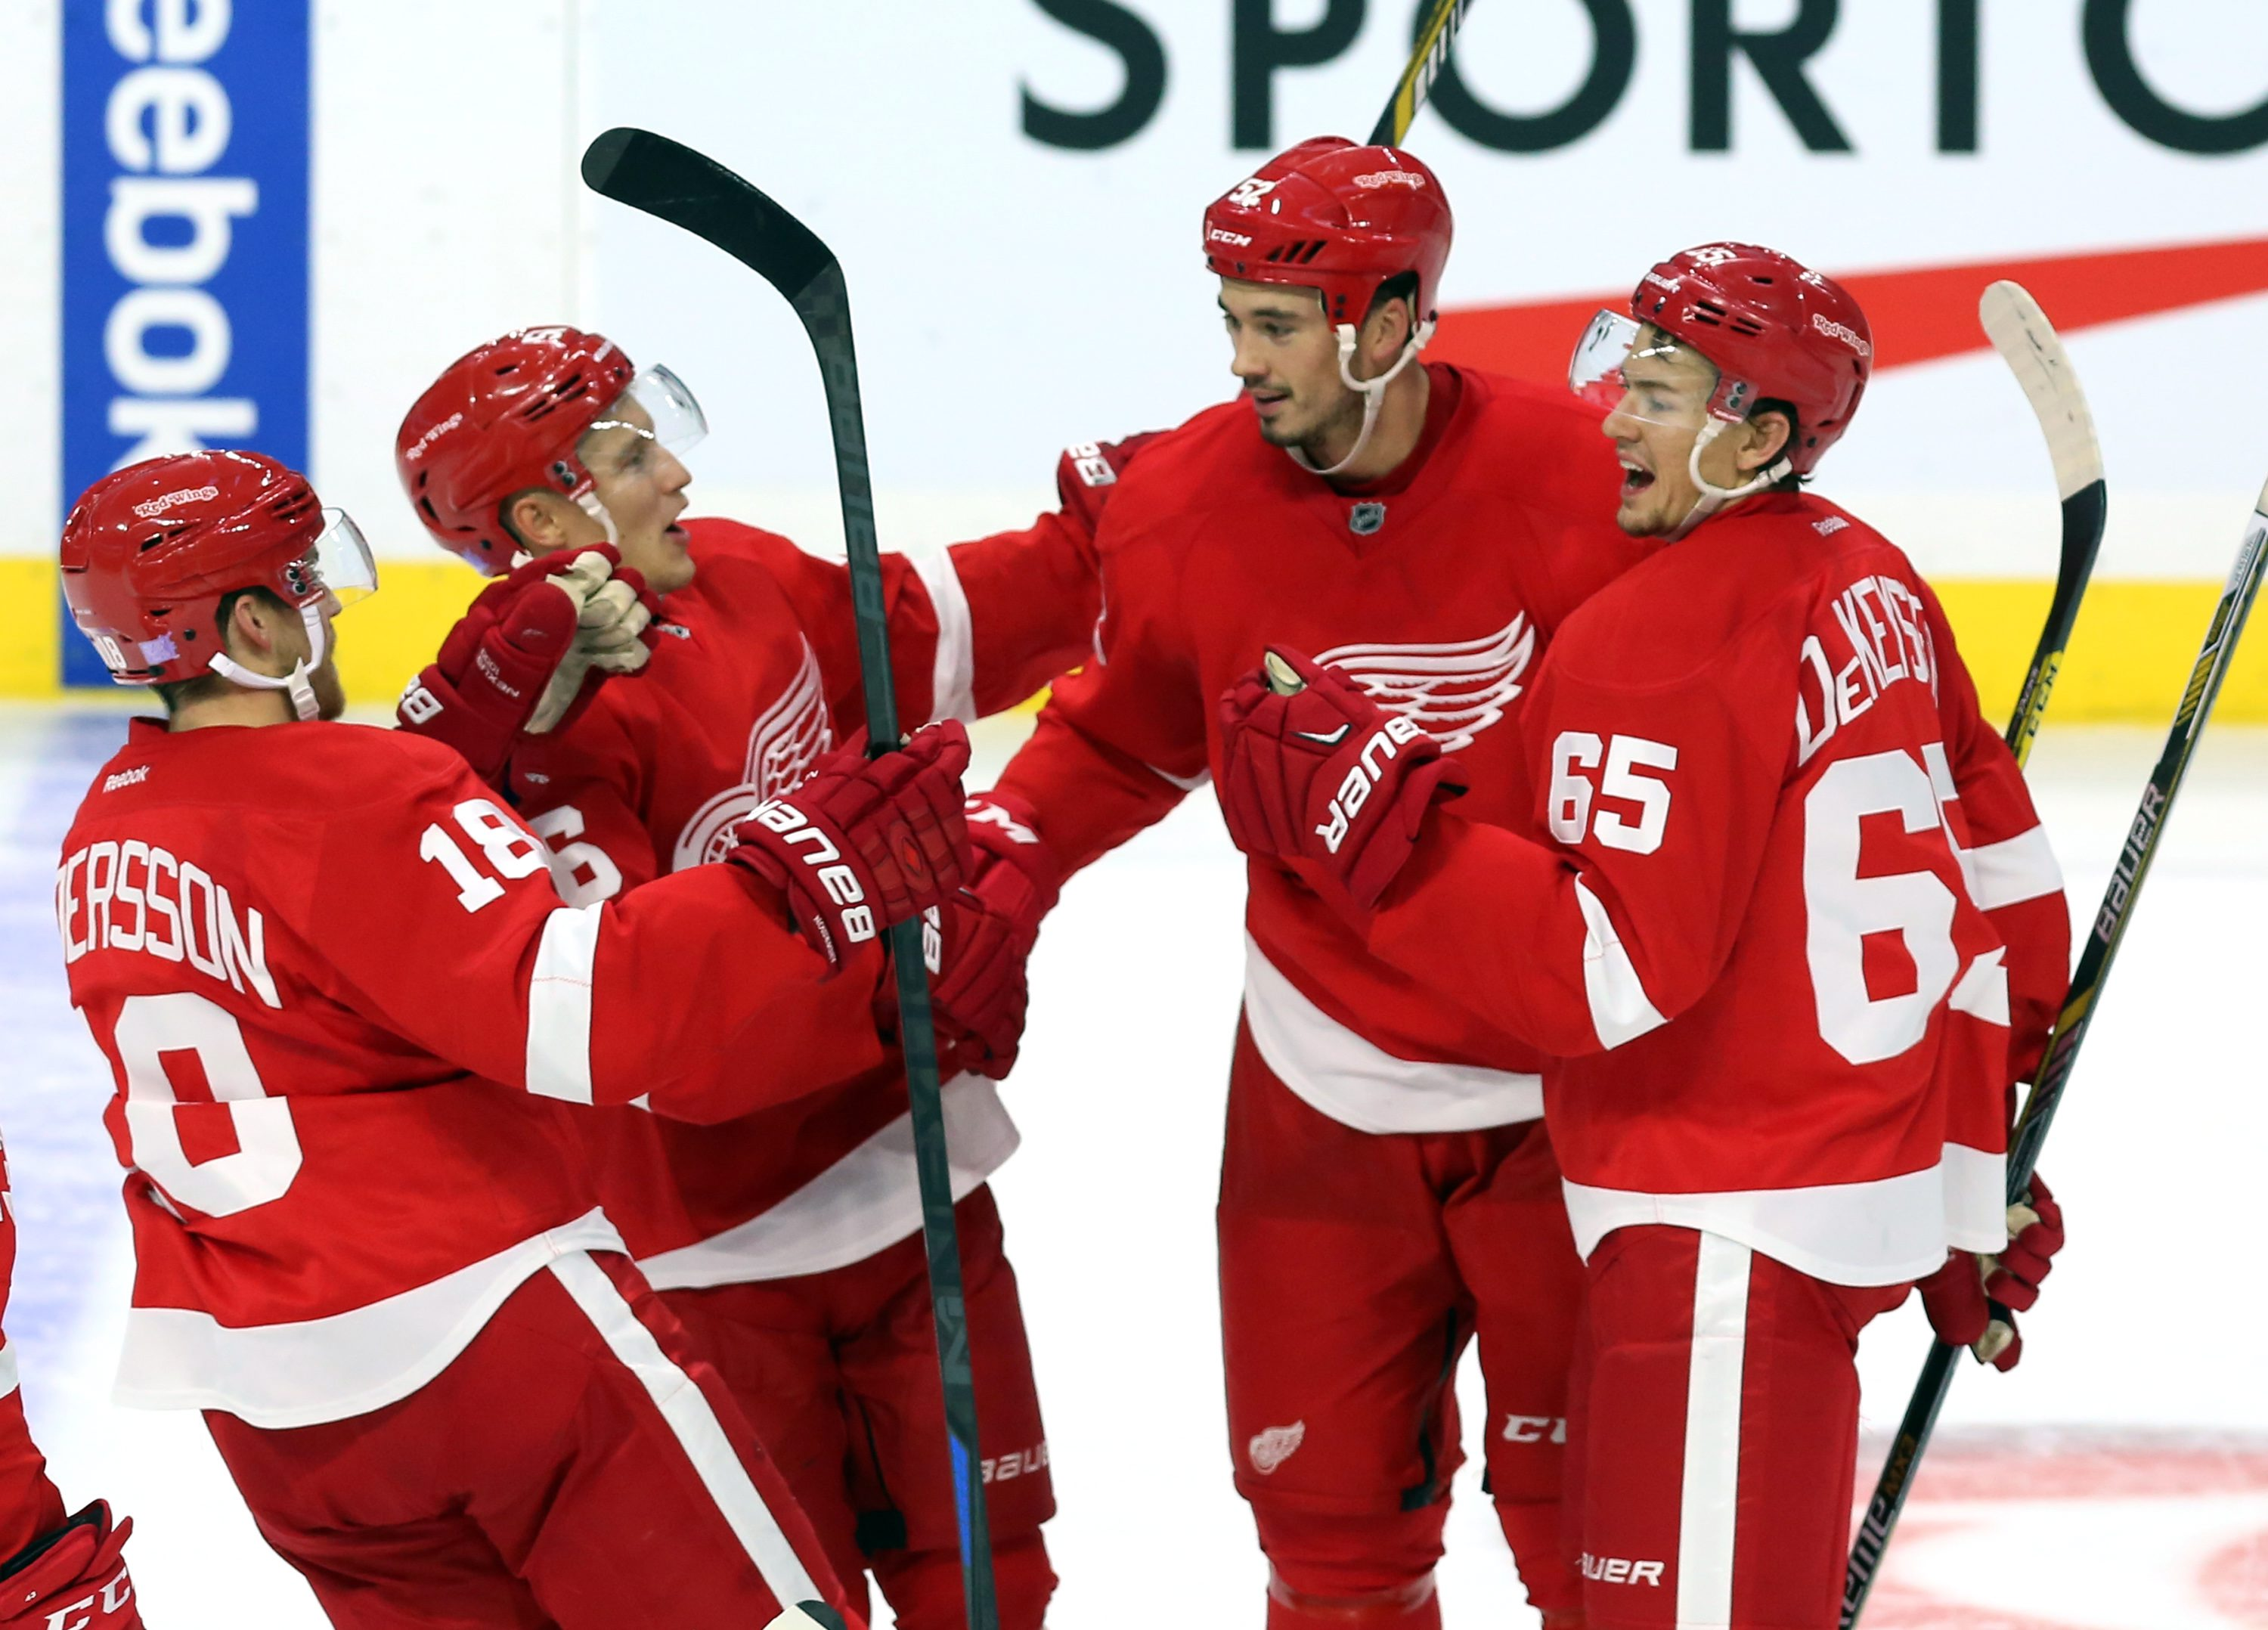 Detroit Red Wings' Jonathan Ericsson (52), second from right, celebrates his goal against the Ottawa Senators with teammates, from left to right, Joakim Andersson (18), Teemu Pulkkinen (56) and Danny DeKeyser (65) during second period NHL hockey action, i